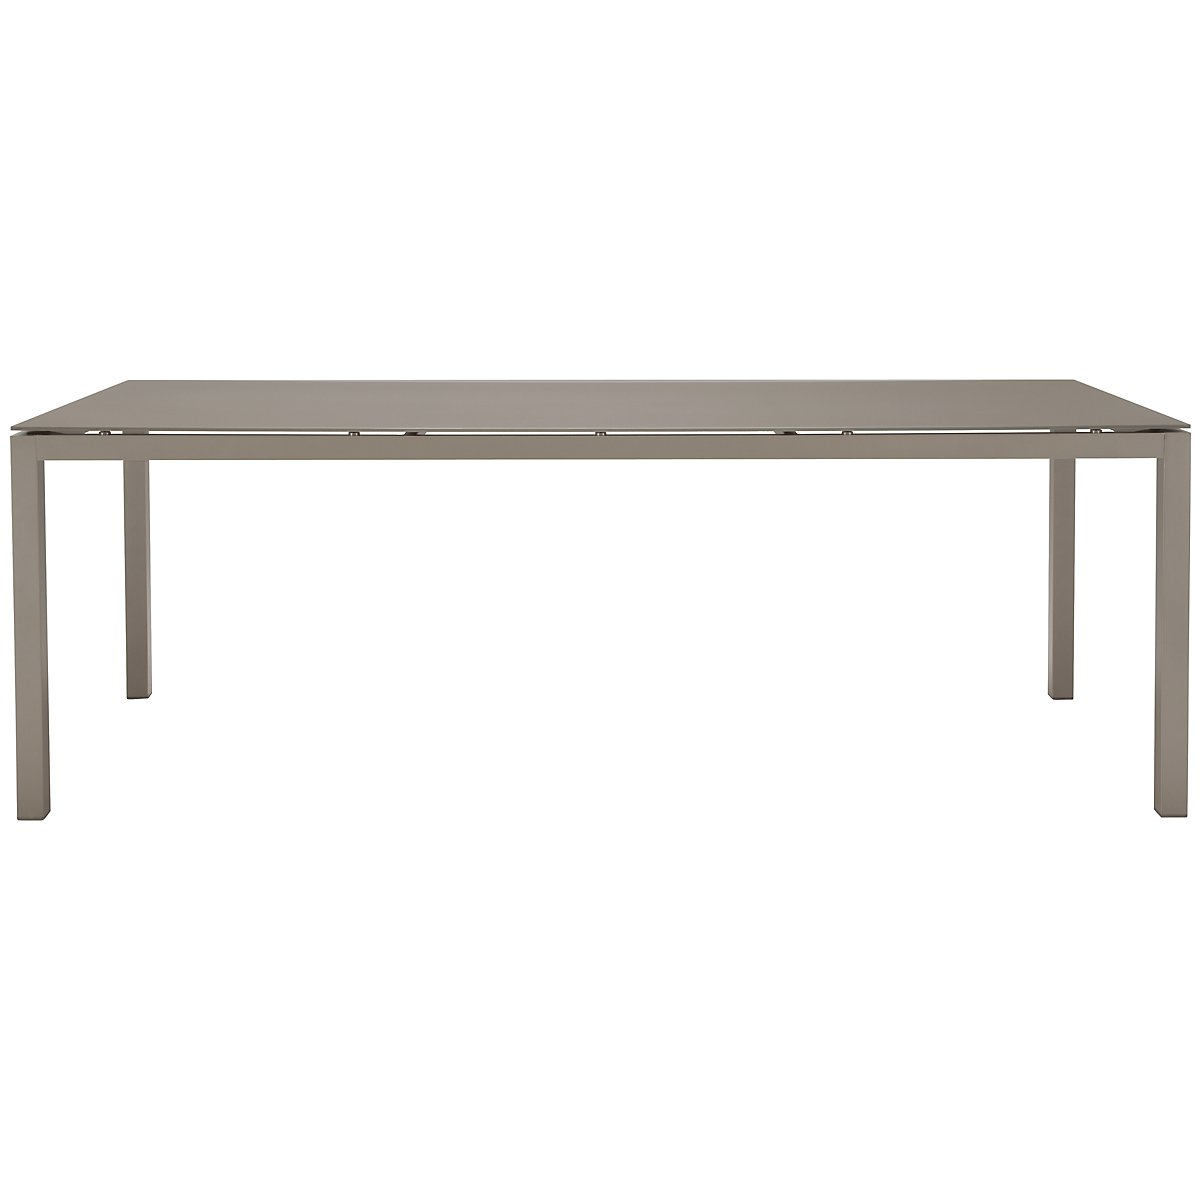 "Lisbon Khaki 86"" Rectangular Table"